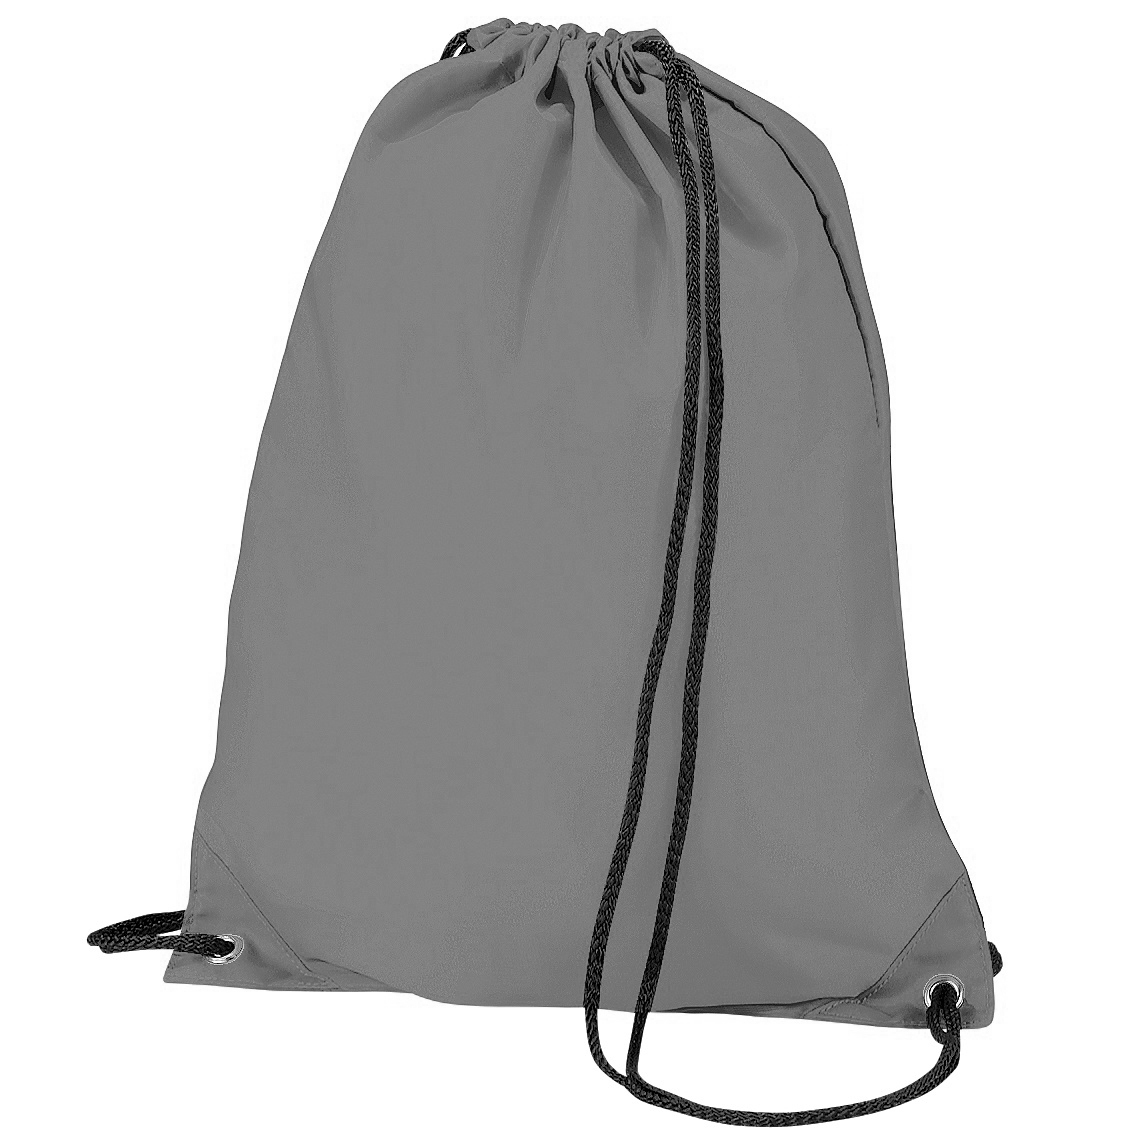 BagBase Budget Water Resistant Sports Gymsac Drawstring Bag (11L) (One Size) (Graphite Grey)